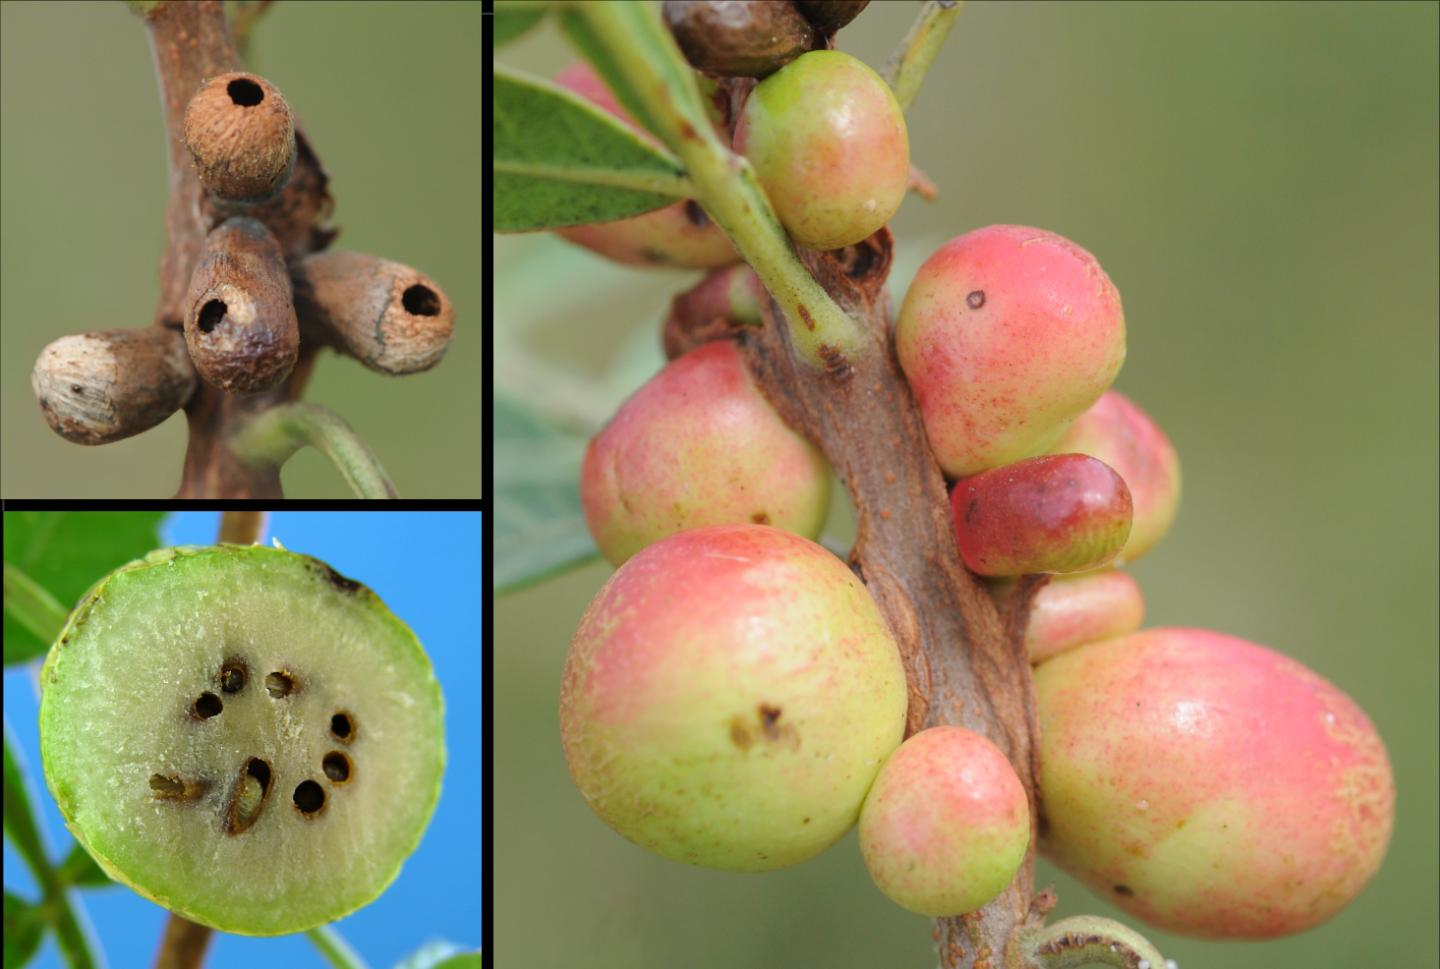 Galls Attacked by Parasitoids